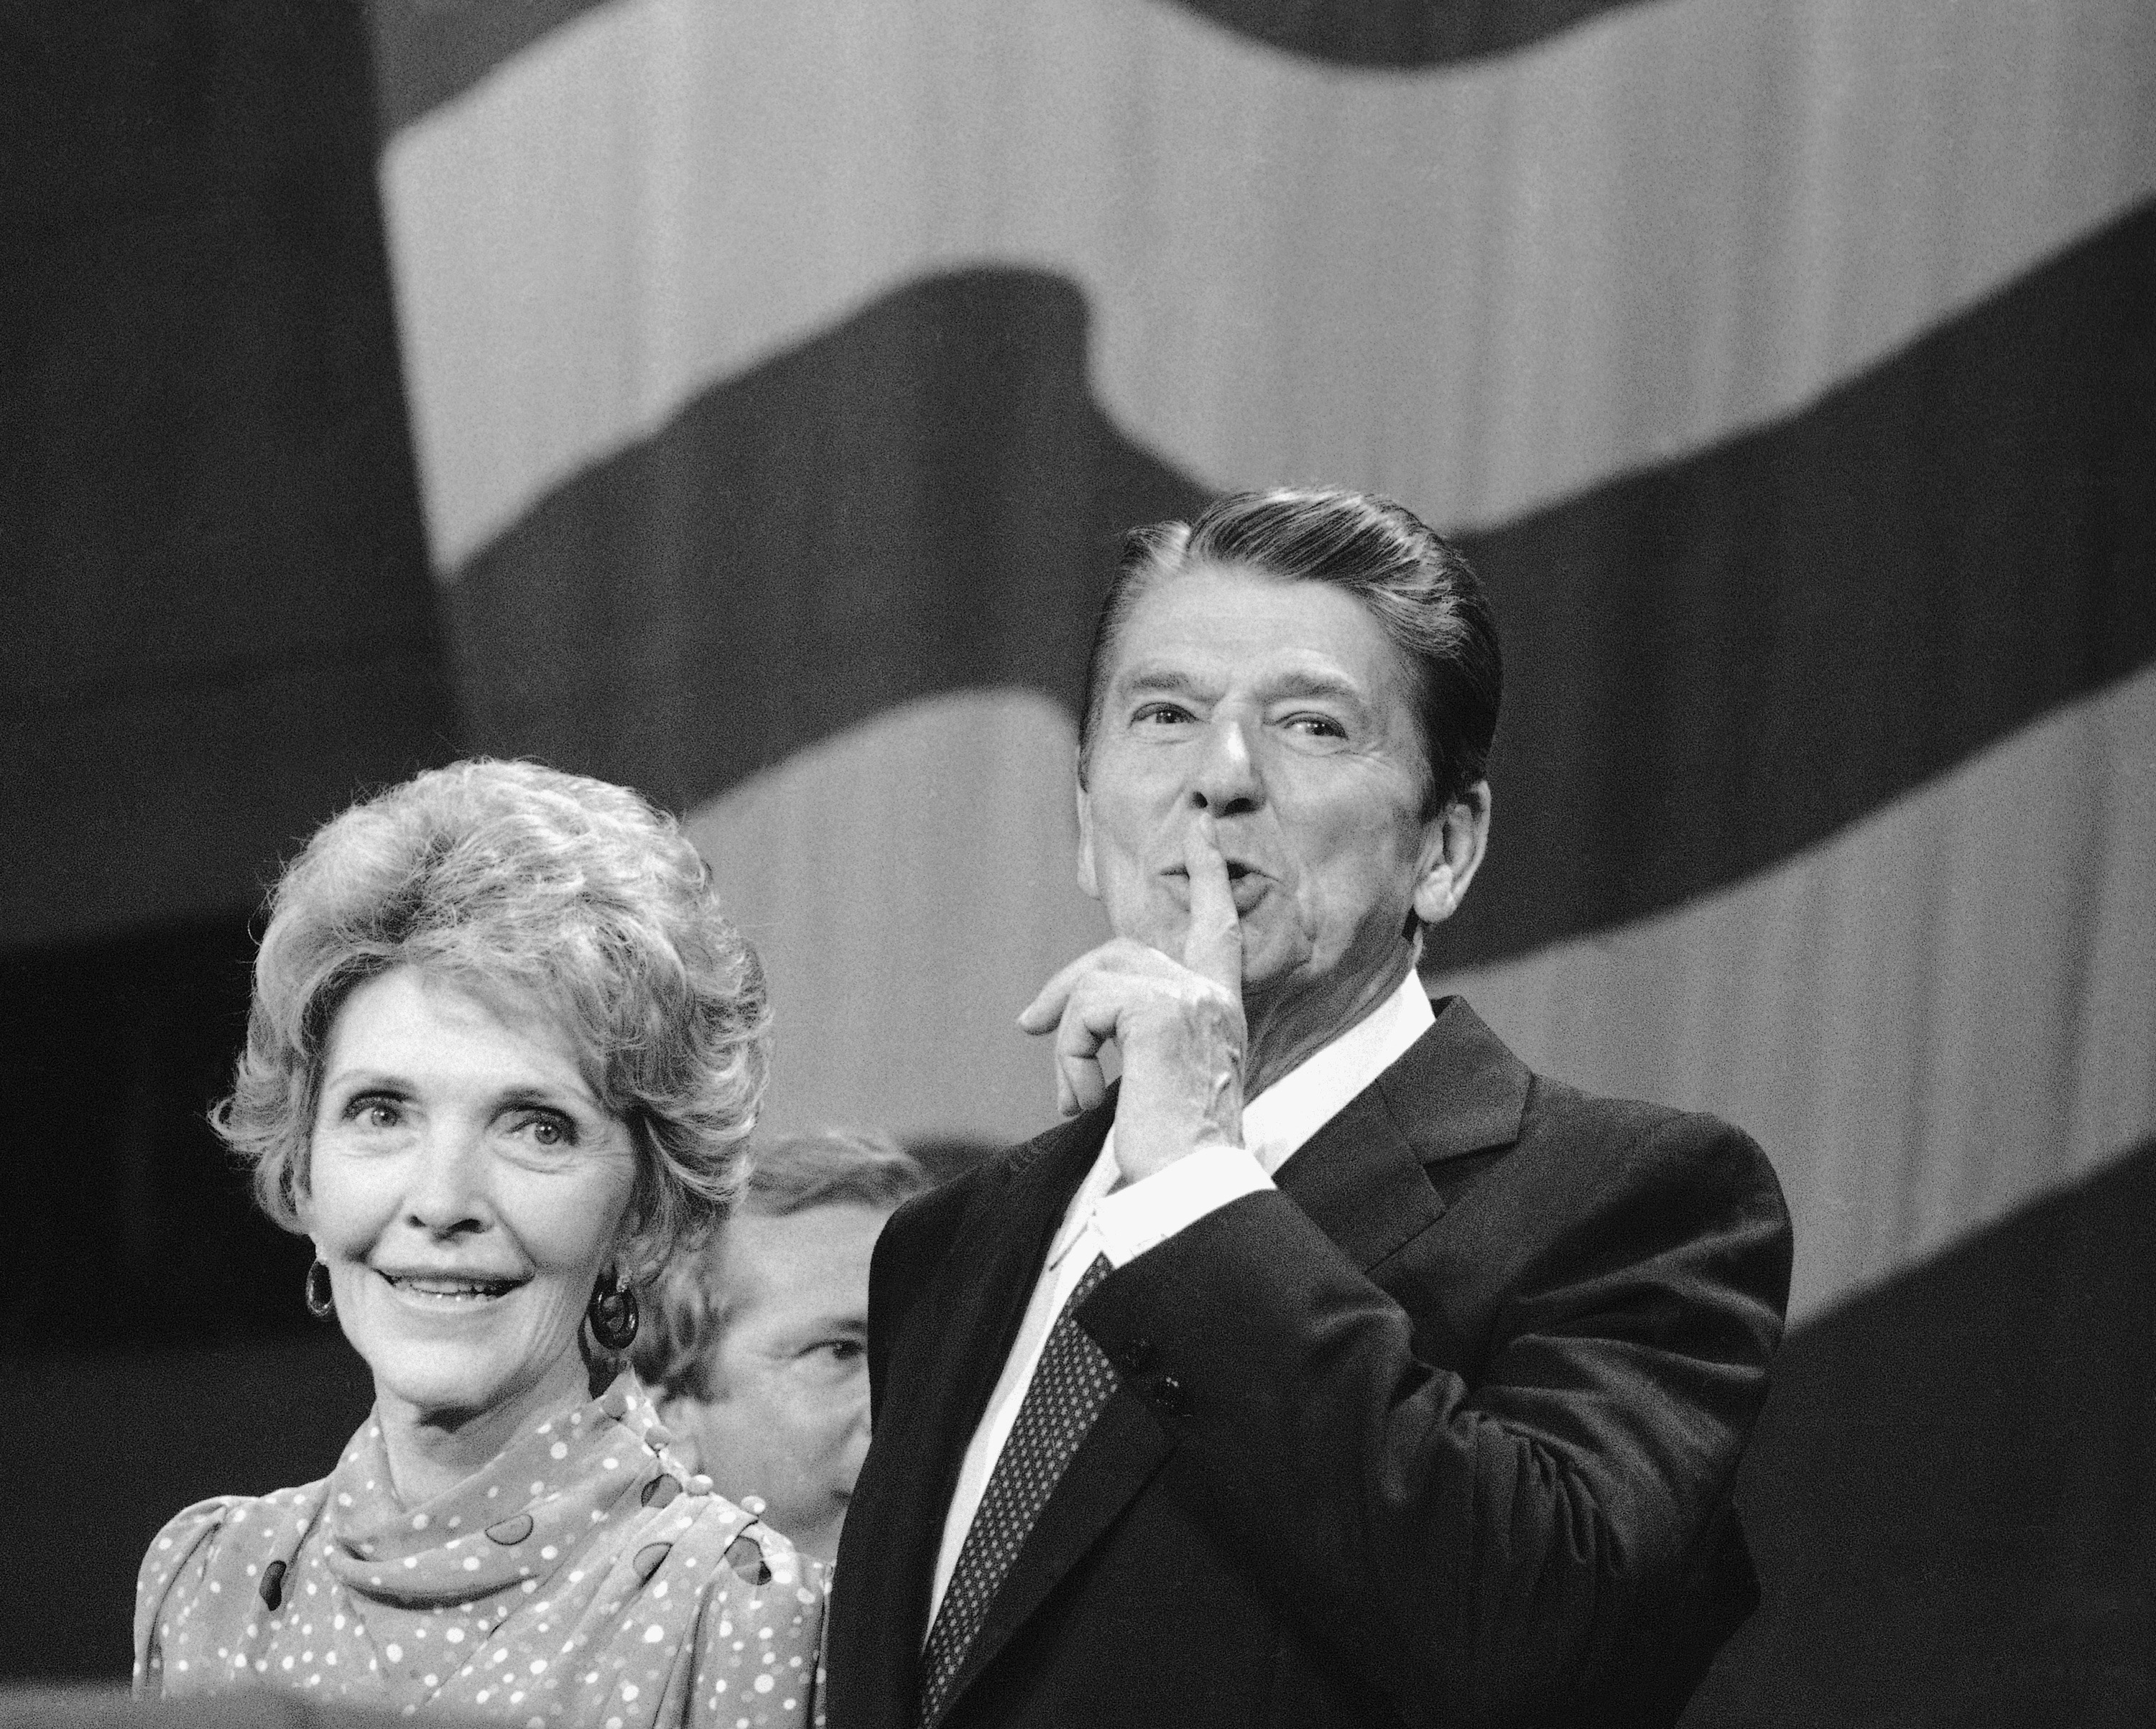 President Ronald Reagan and First Lady Nancy Reagan at the 33rd Republican National Convention in Dallas, Aug. 24, 1984.